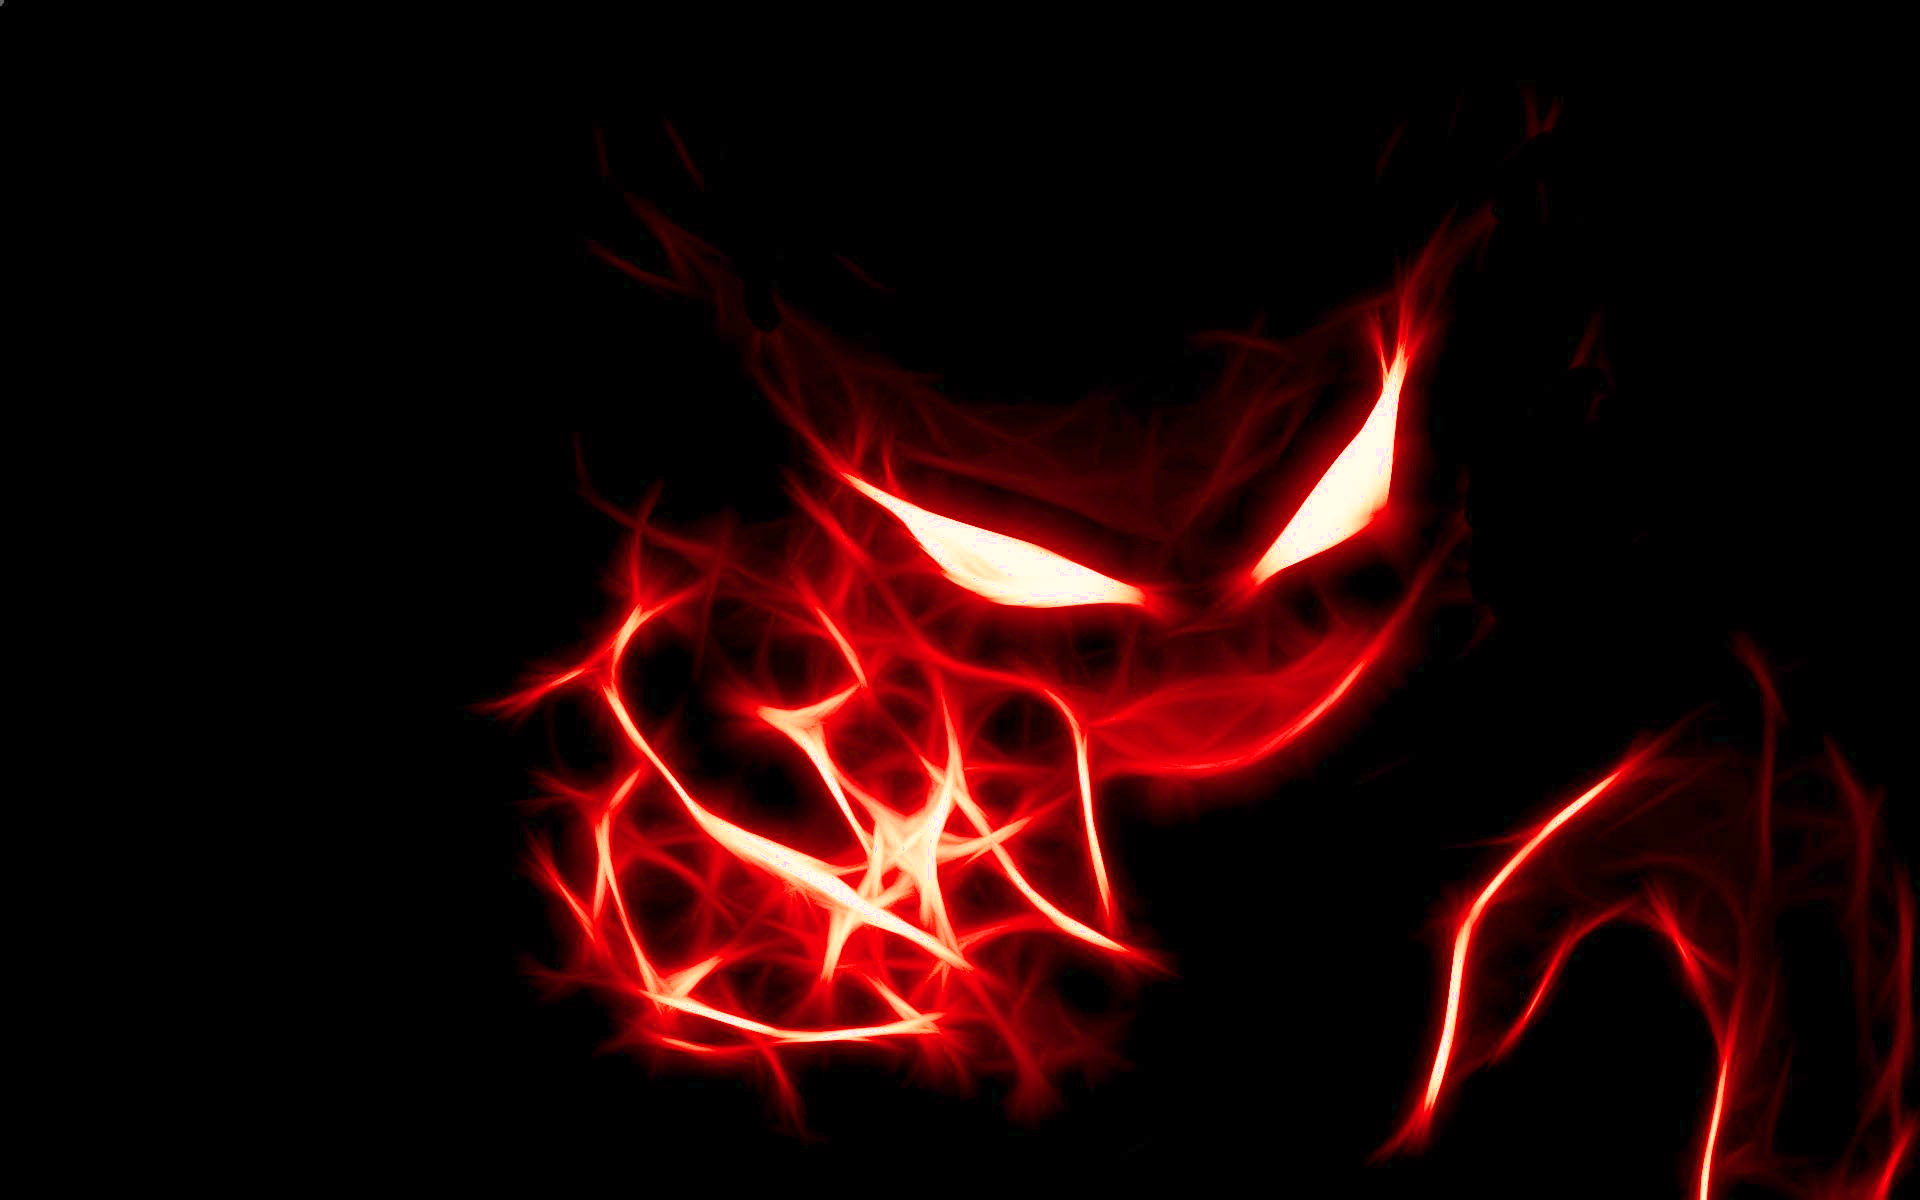 Awesome red mask in the dark with glowing eyes